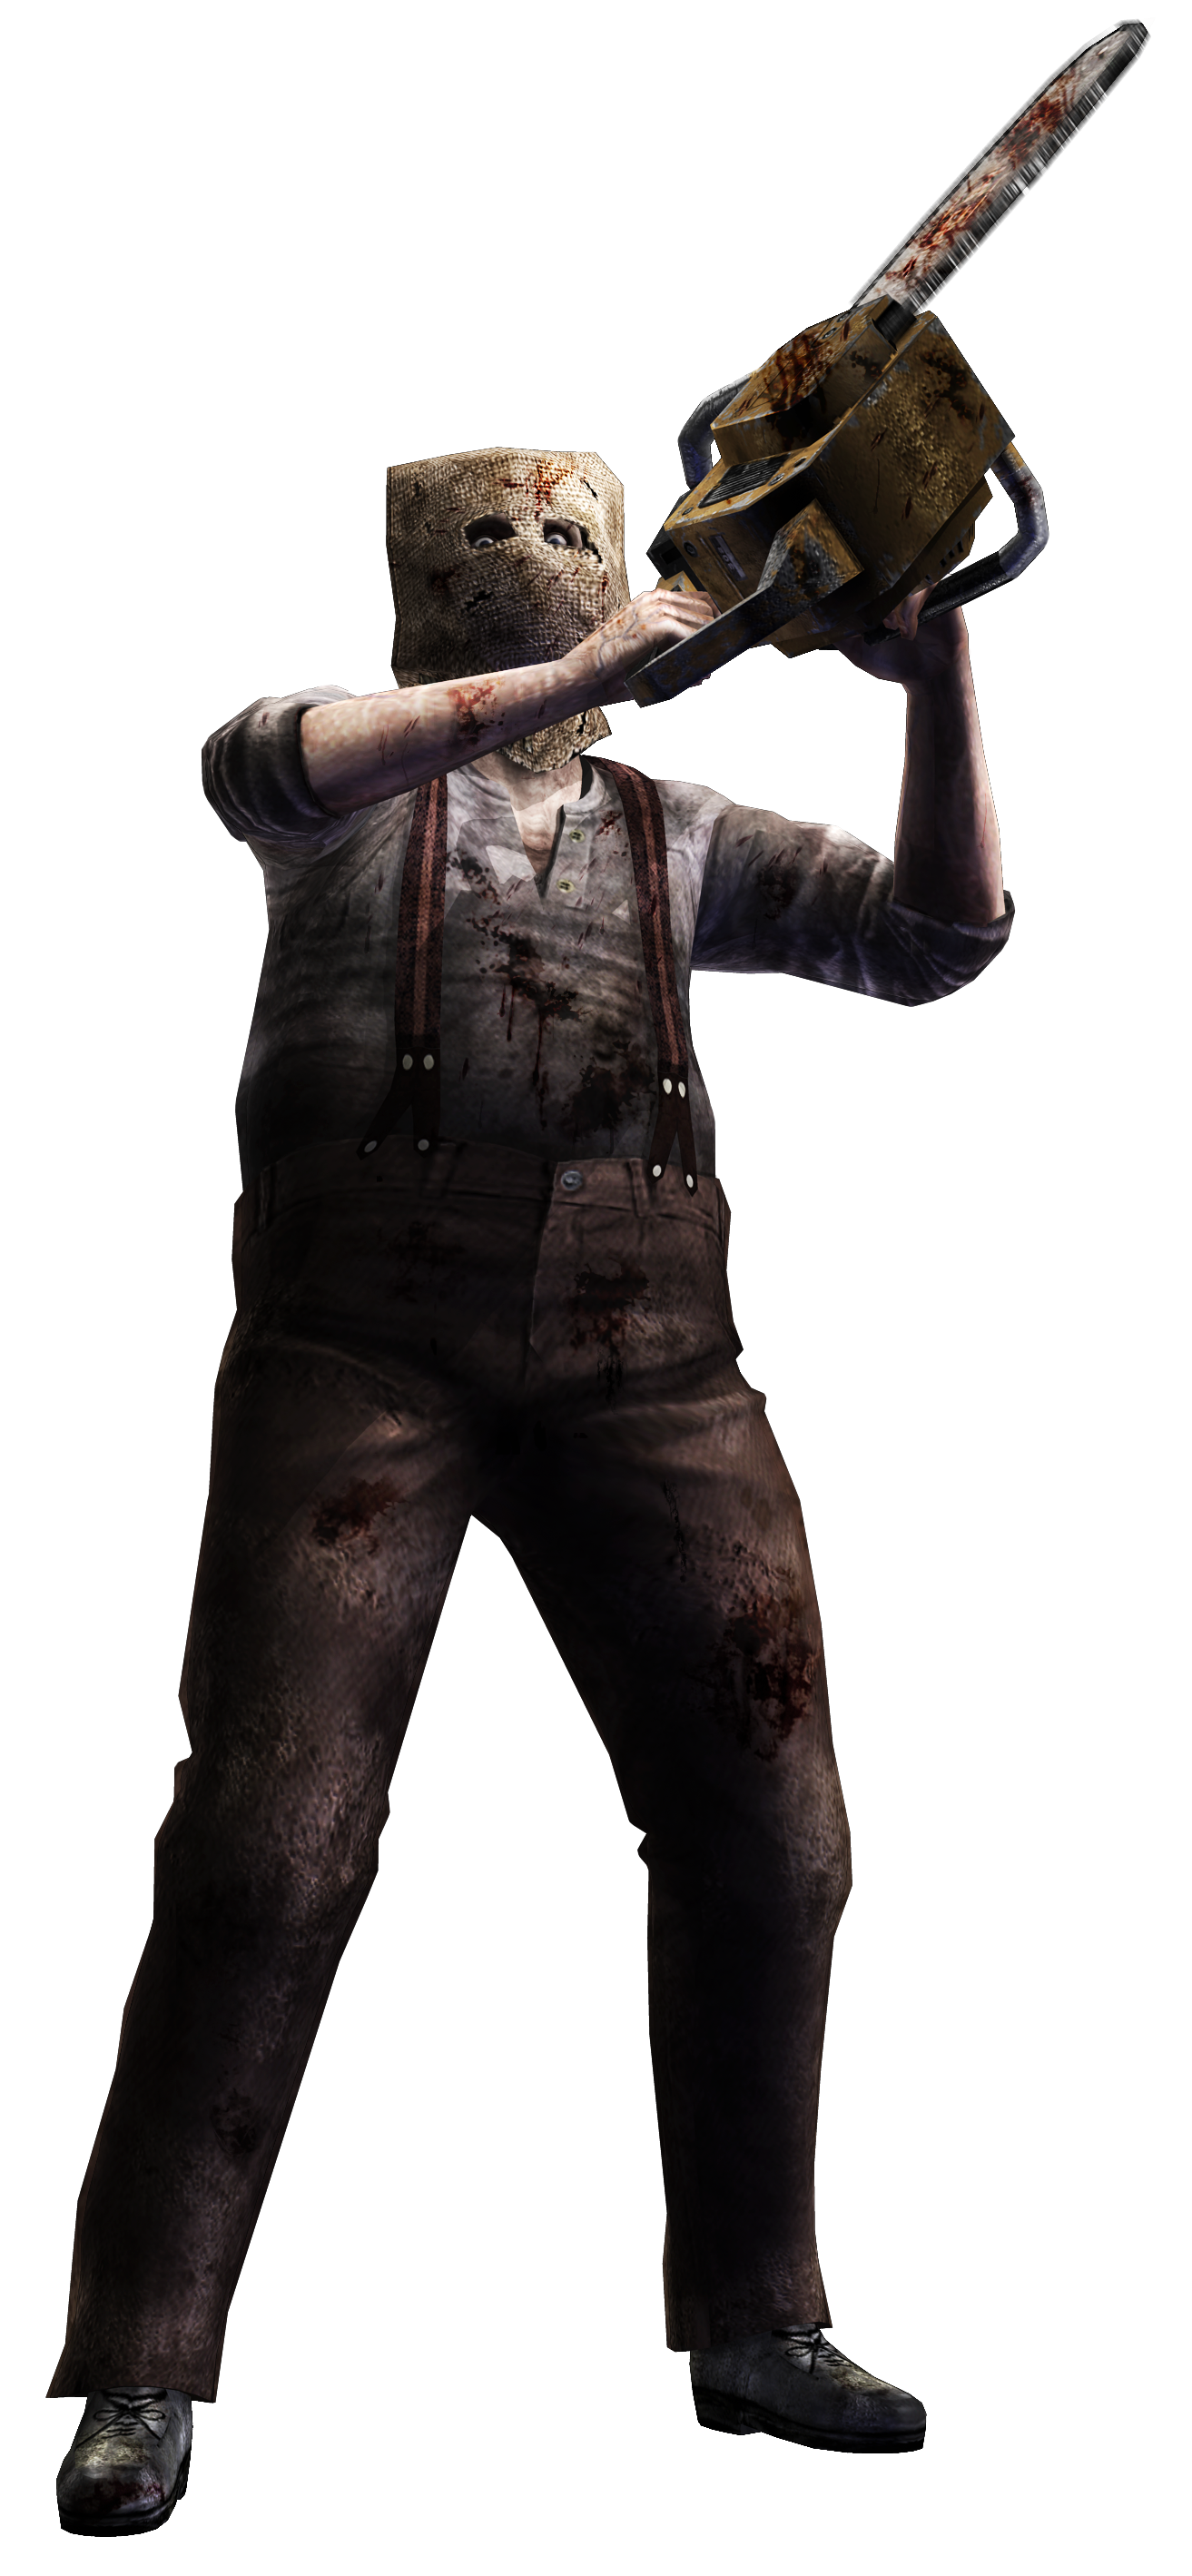 Resident Evil 4 Chainsaw Guy Chainsaw Man | Residen...